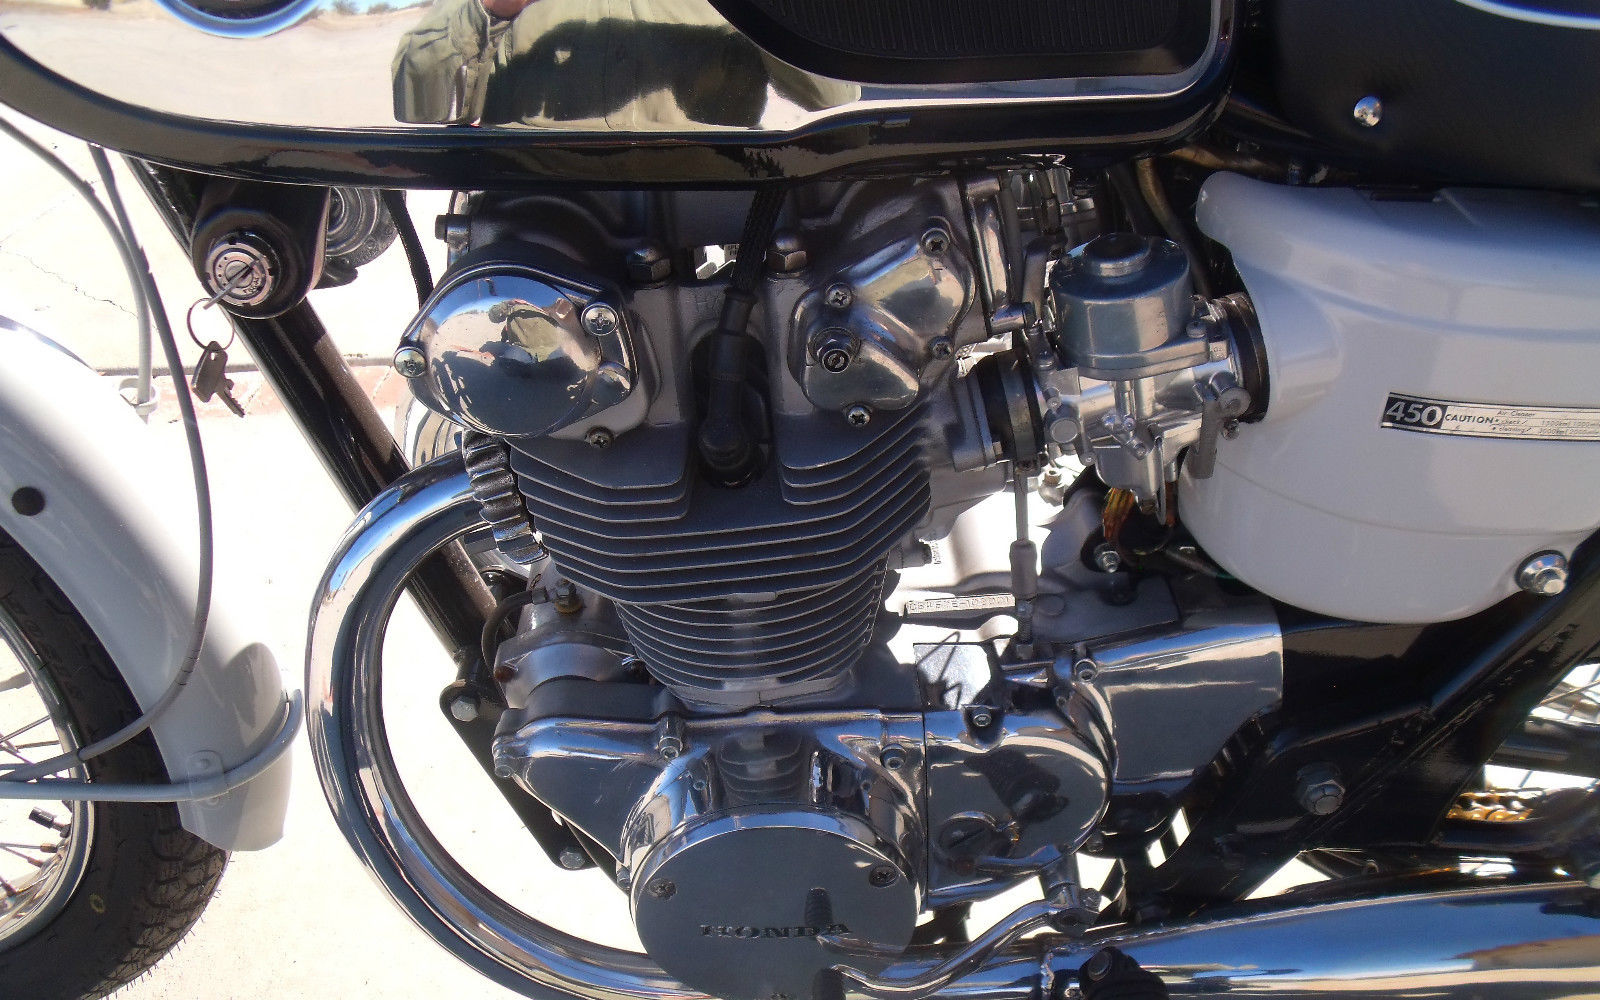 Honda CB450 Black Bomber - 1967 - Engine and Gearbox, Engine Cases and Gear Change.